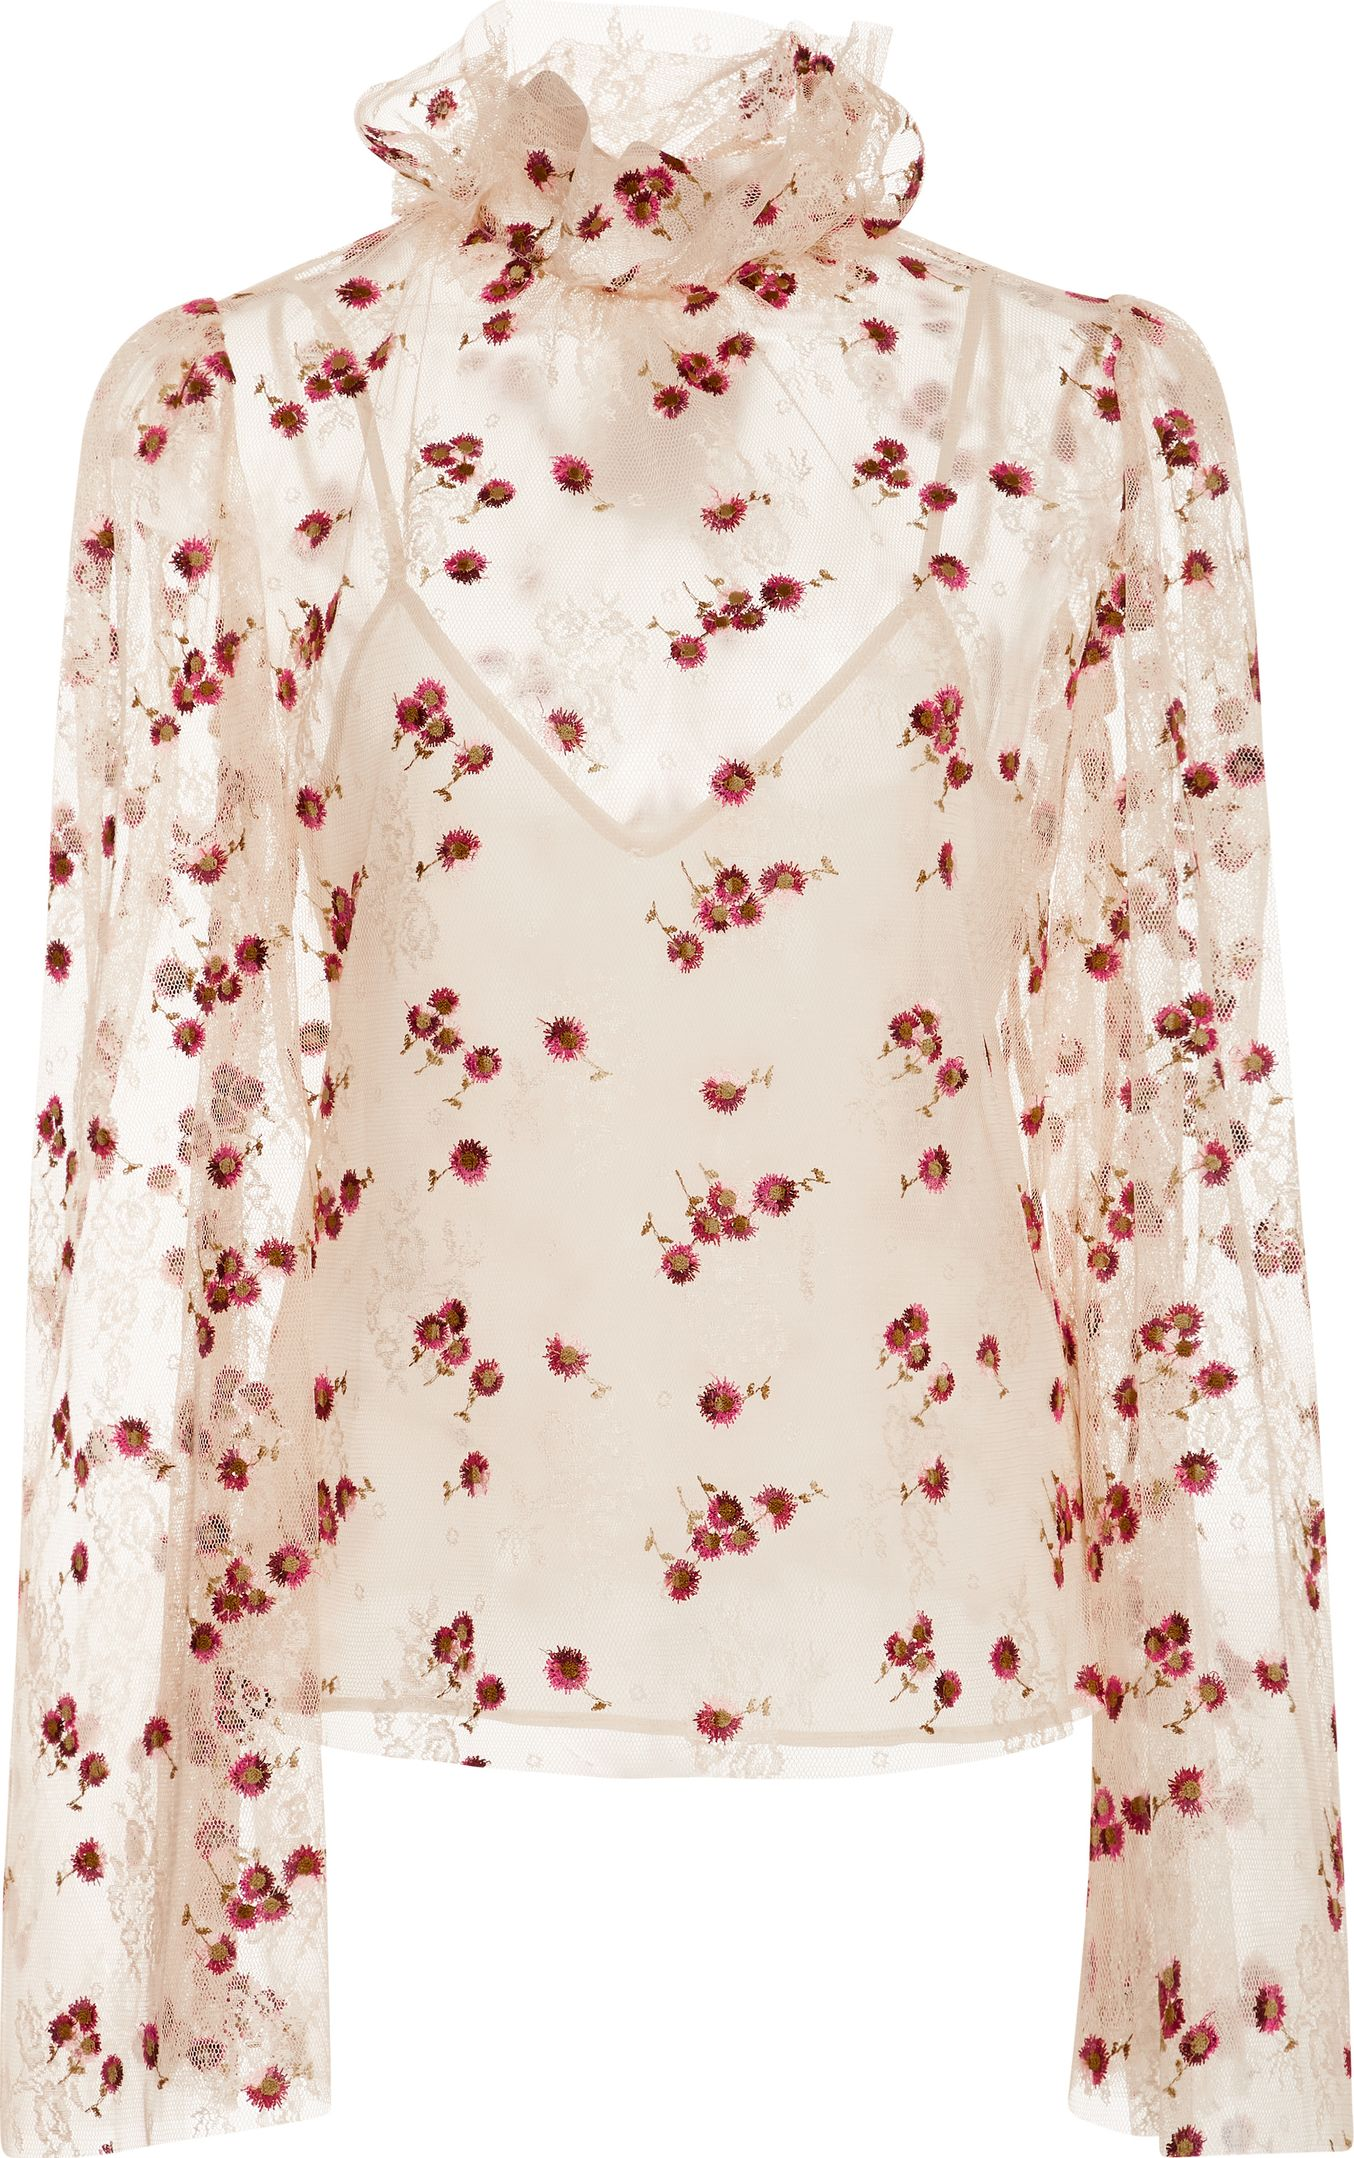 luisa beccaria - Sheer Floral Embroidered Blouse